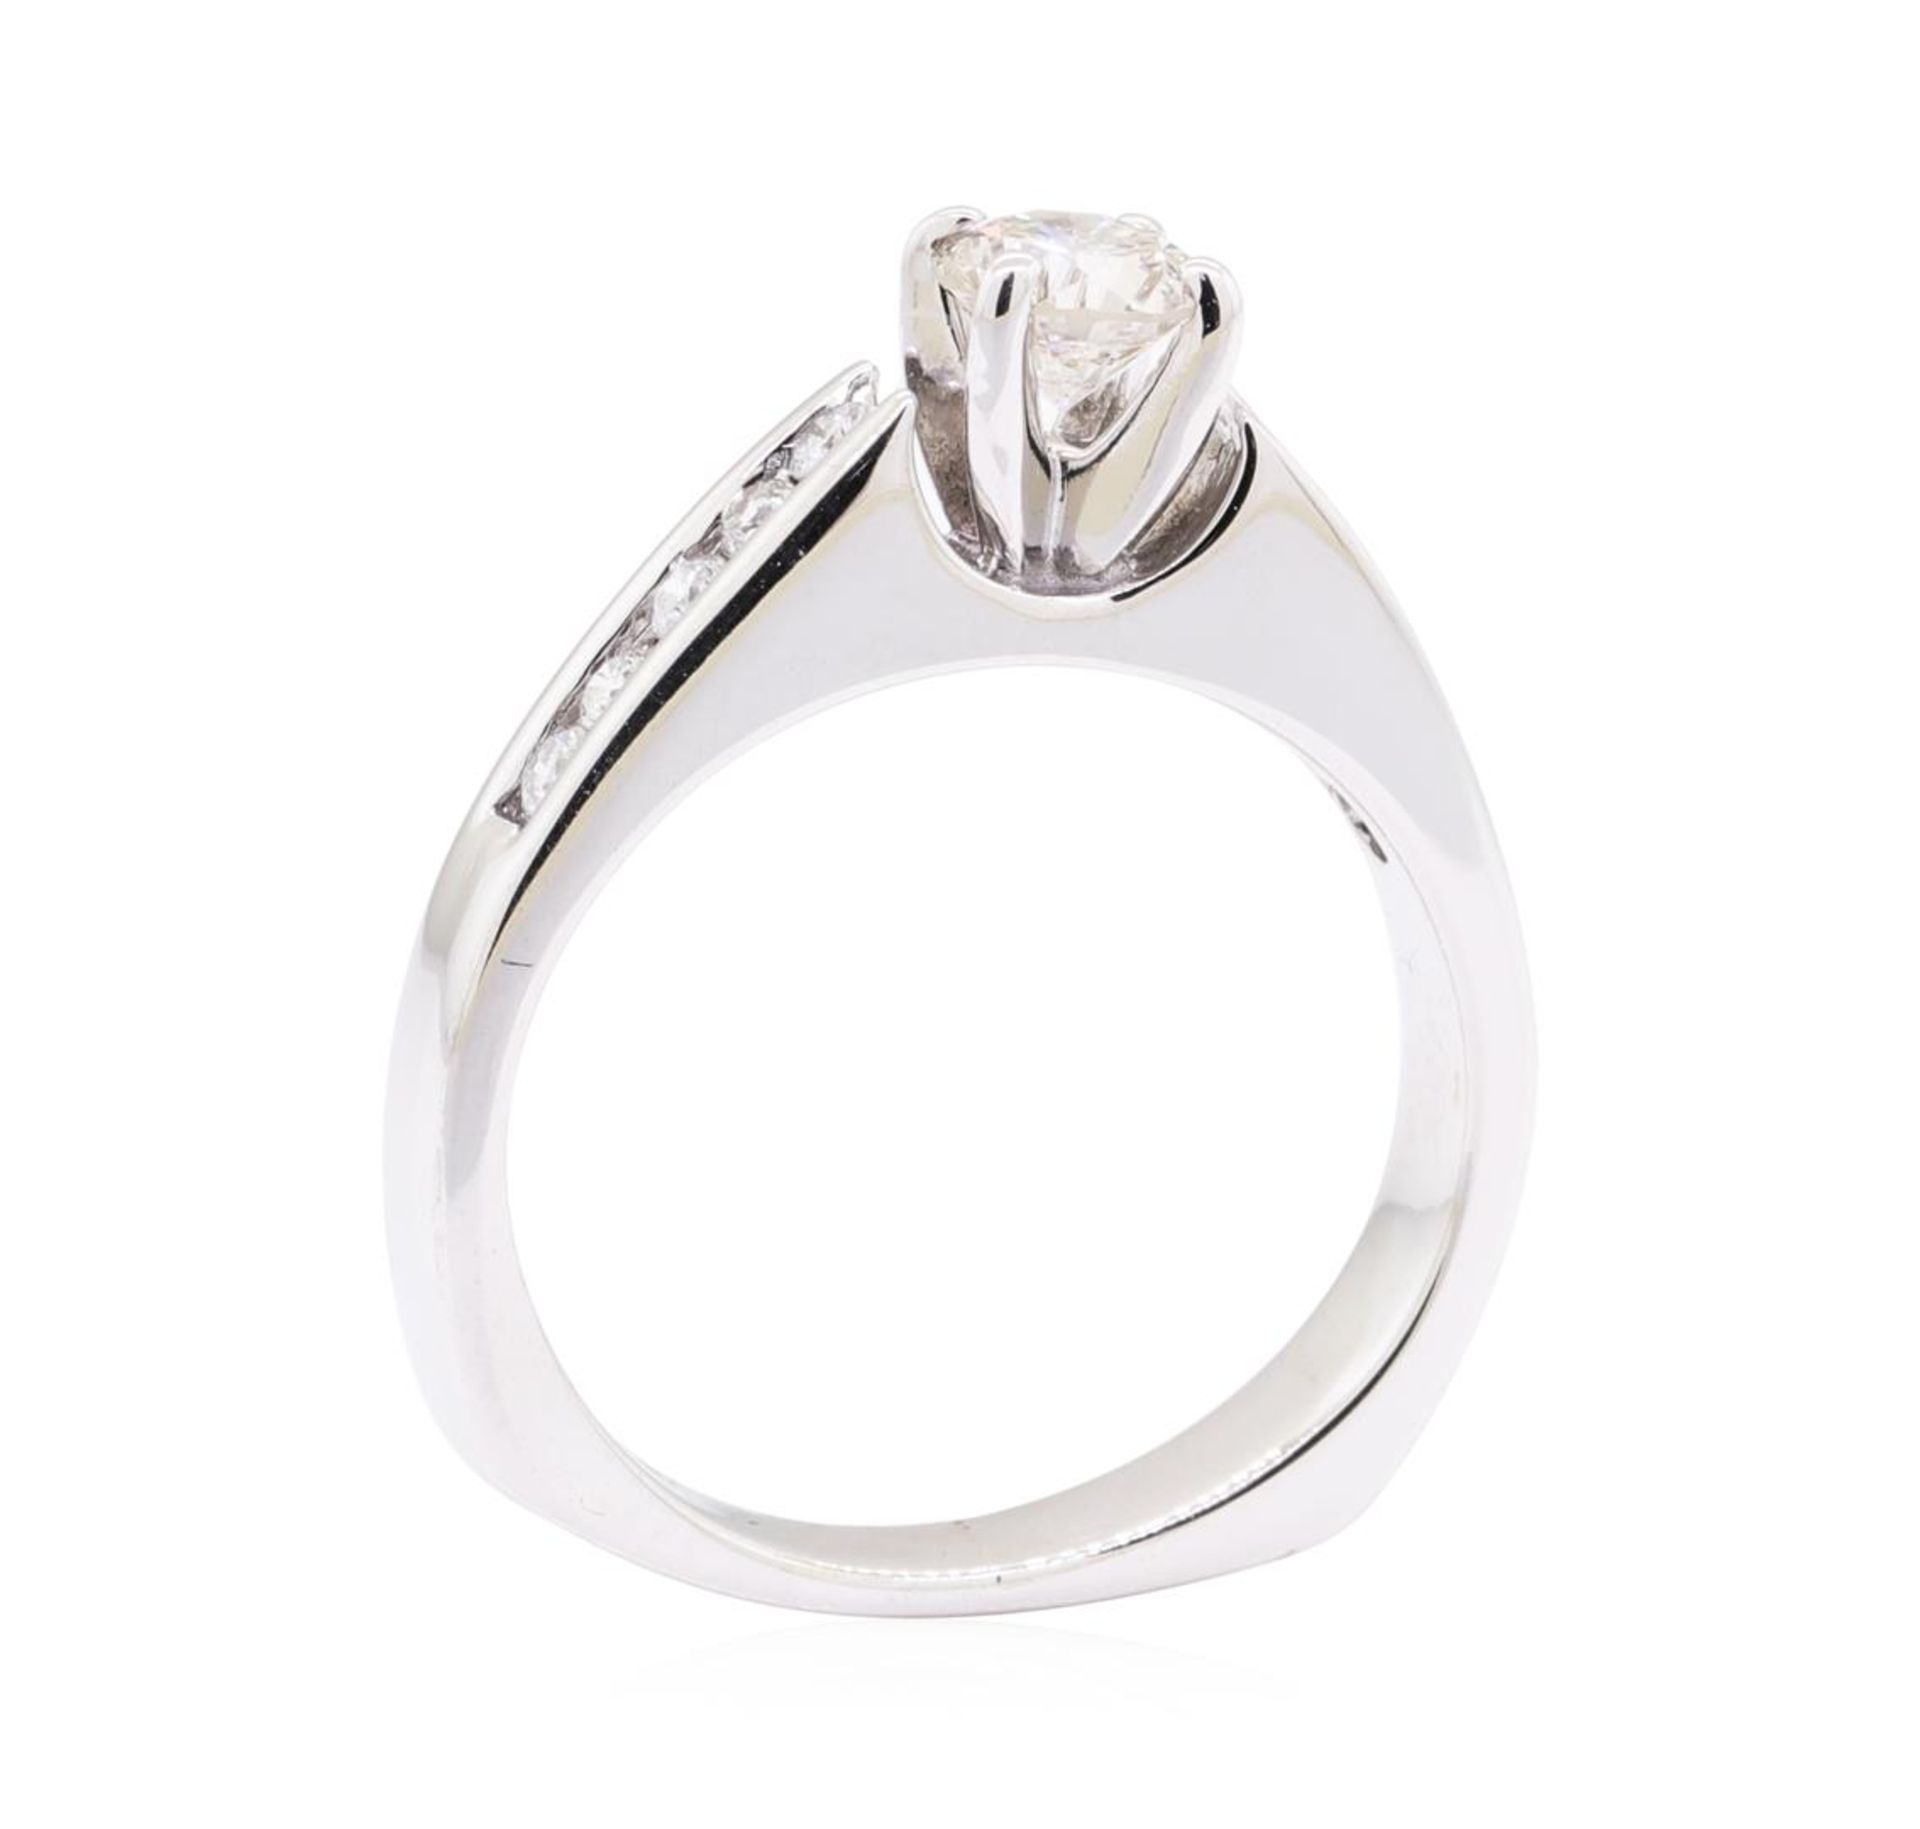 0.80 ctw Diamond Wedding Ring with a Euro Shank - 14KT White Gold - Image 4 of 4